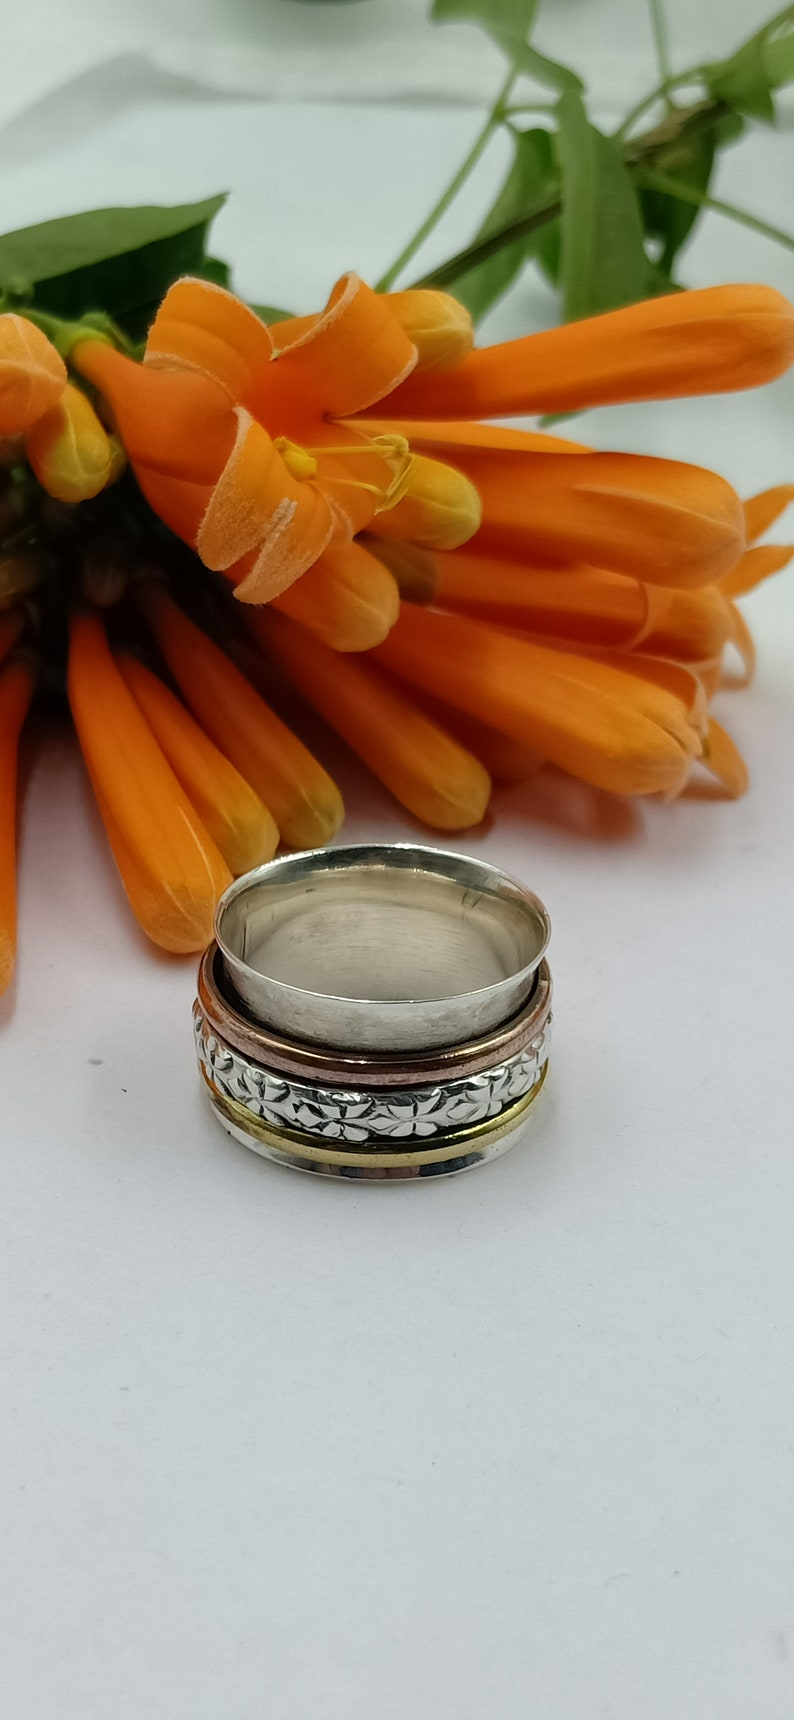 Handmade Three Tone Designer Carved Band Spinner Ring 925 Sterling Silver /& Brass Spinner Ring Valentine/'s Day Gift Idea Jewelry